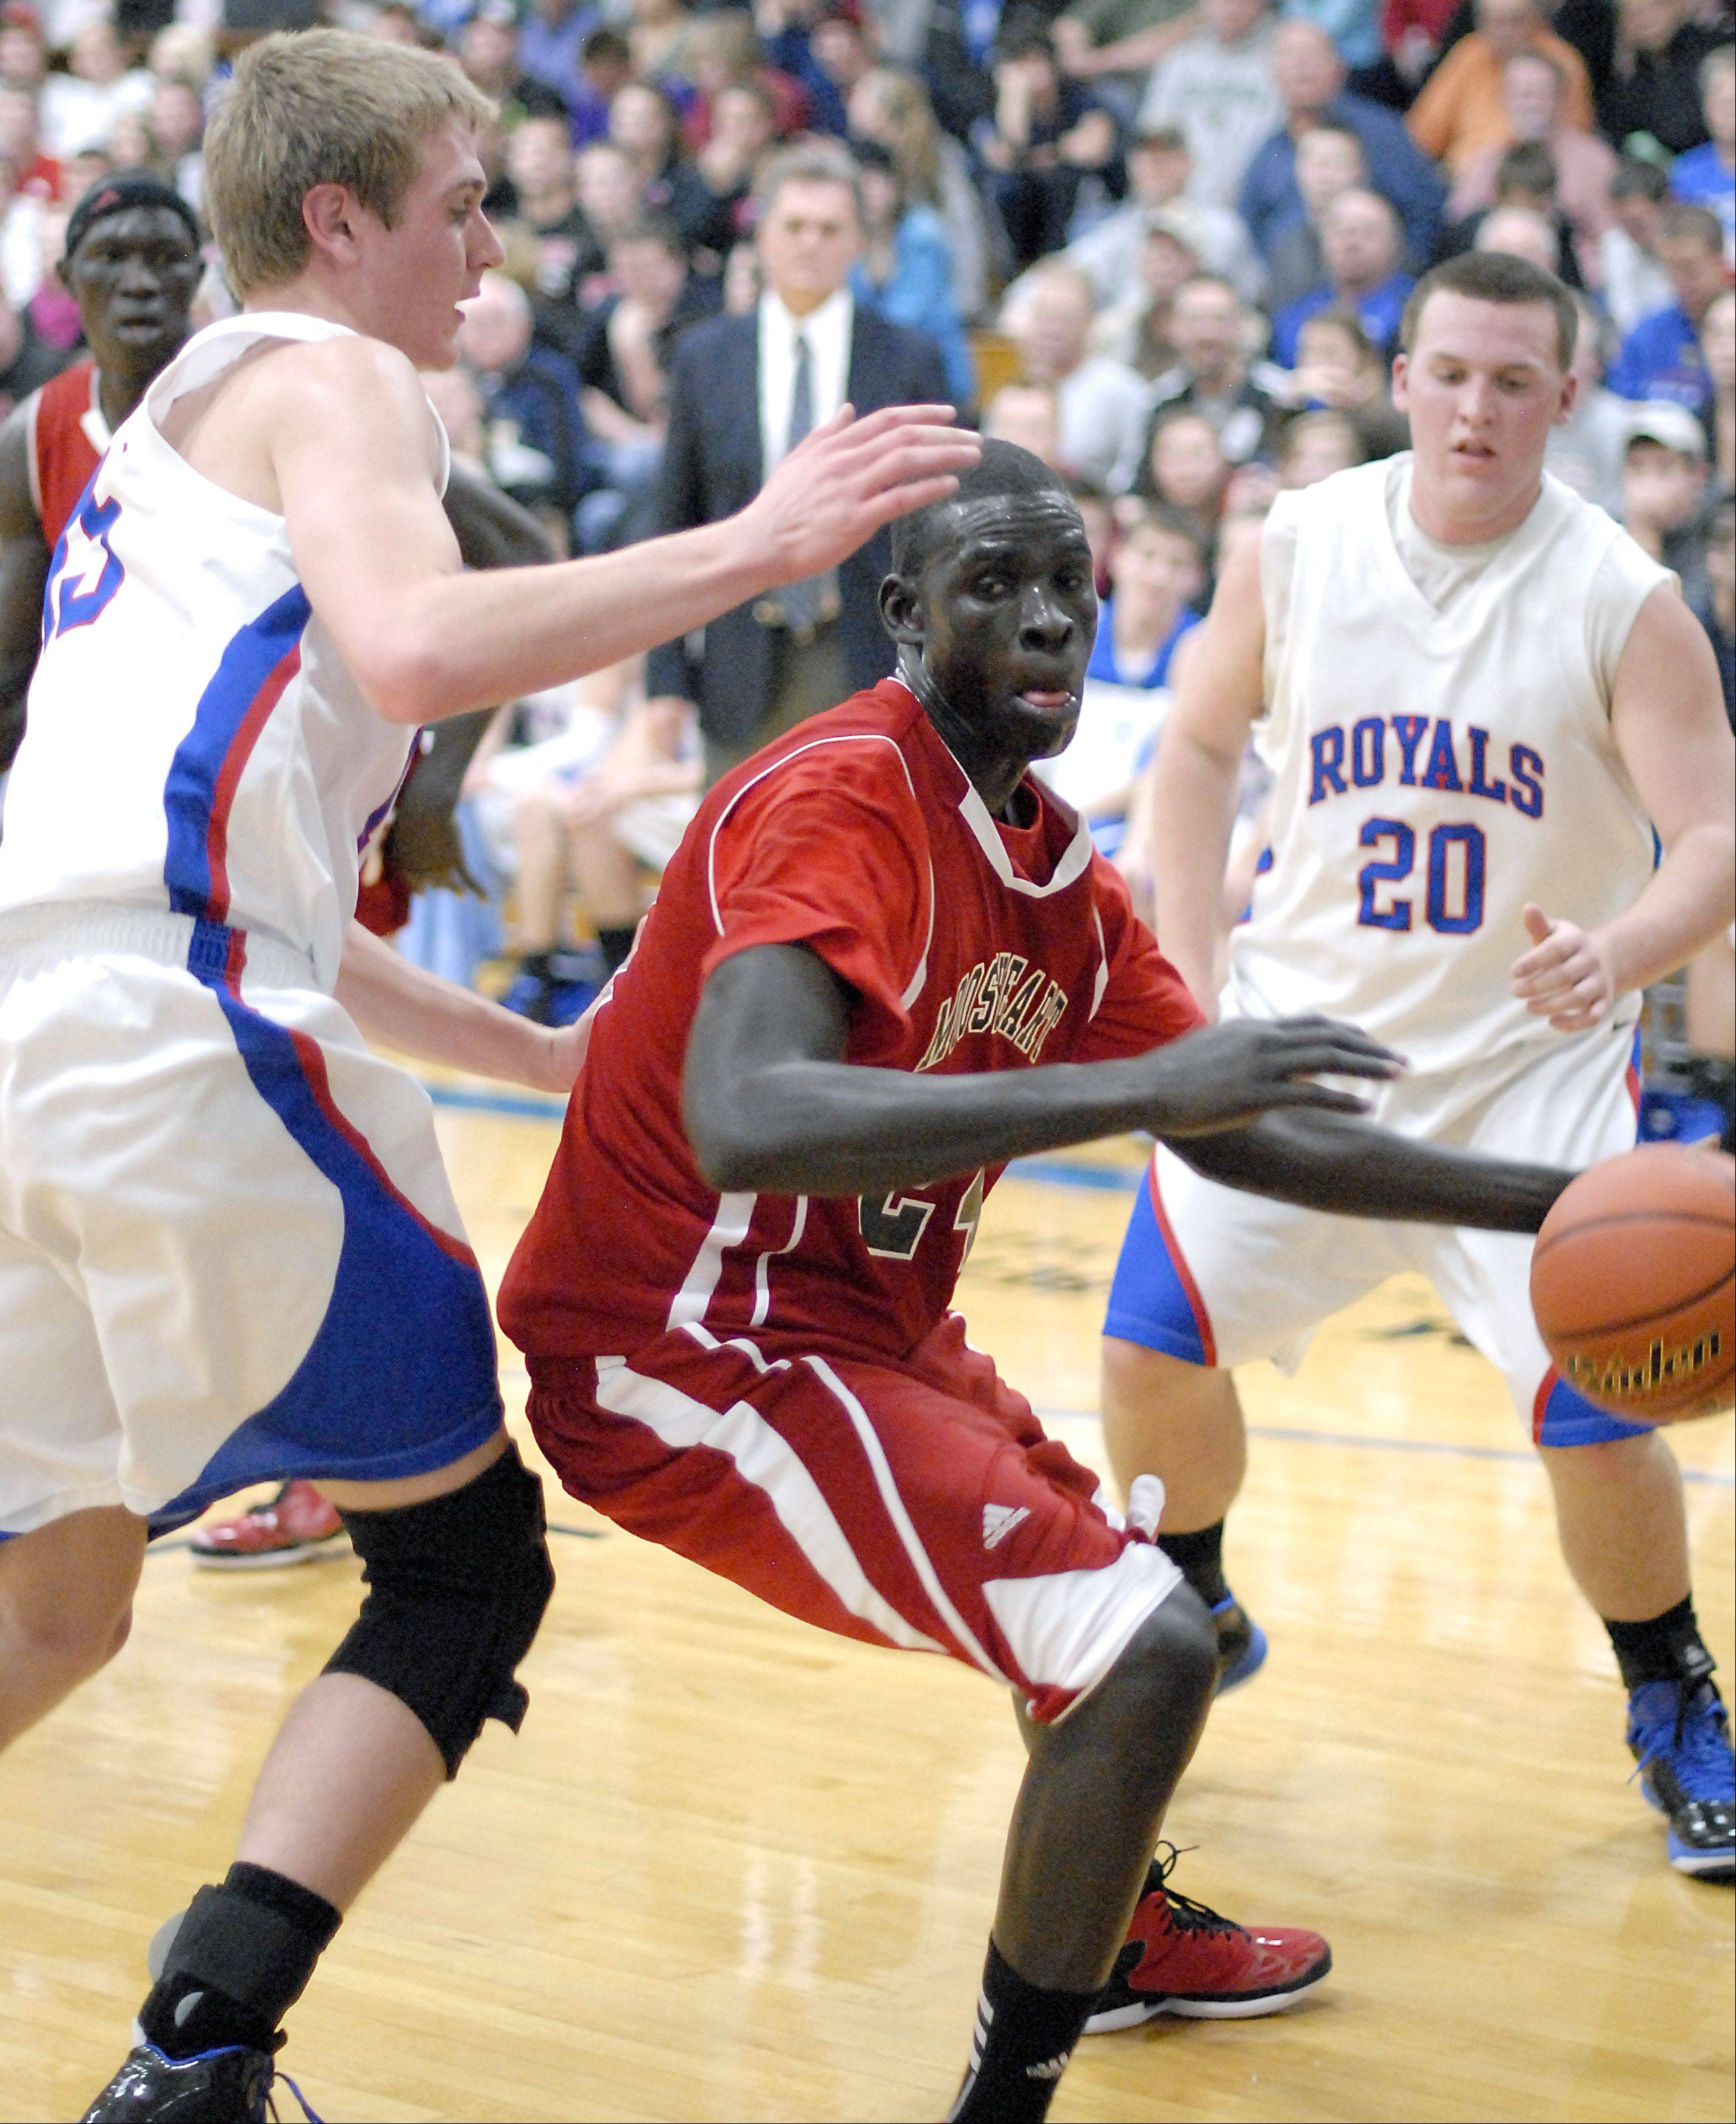 Mooseheart's Mangisto Deng maneuvers around Hinckley-Big Rock's Nick Gentry under the hoop in the first quarter on Wednesday, December 5.